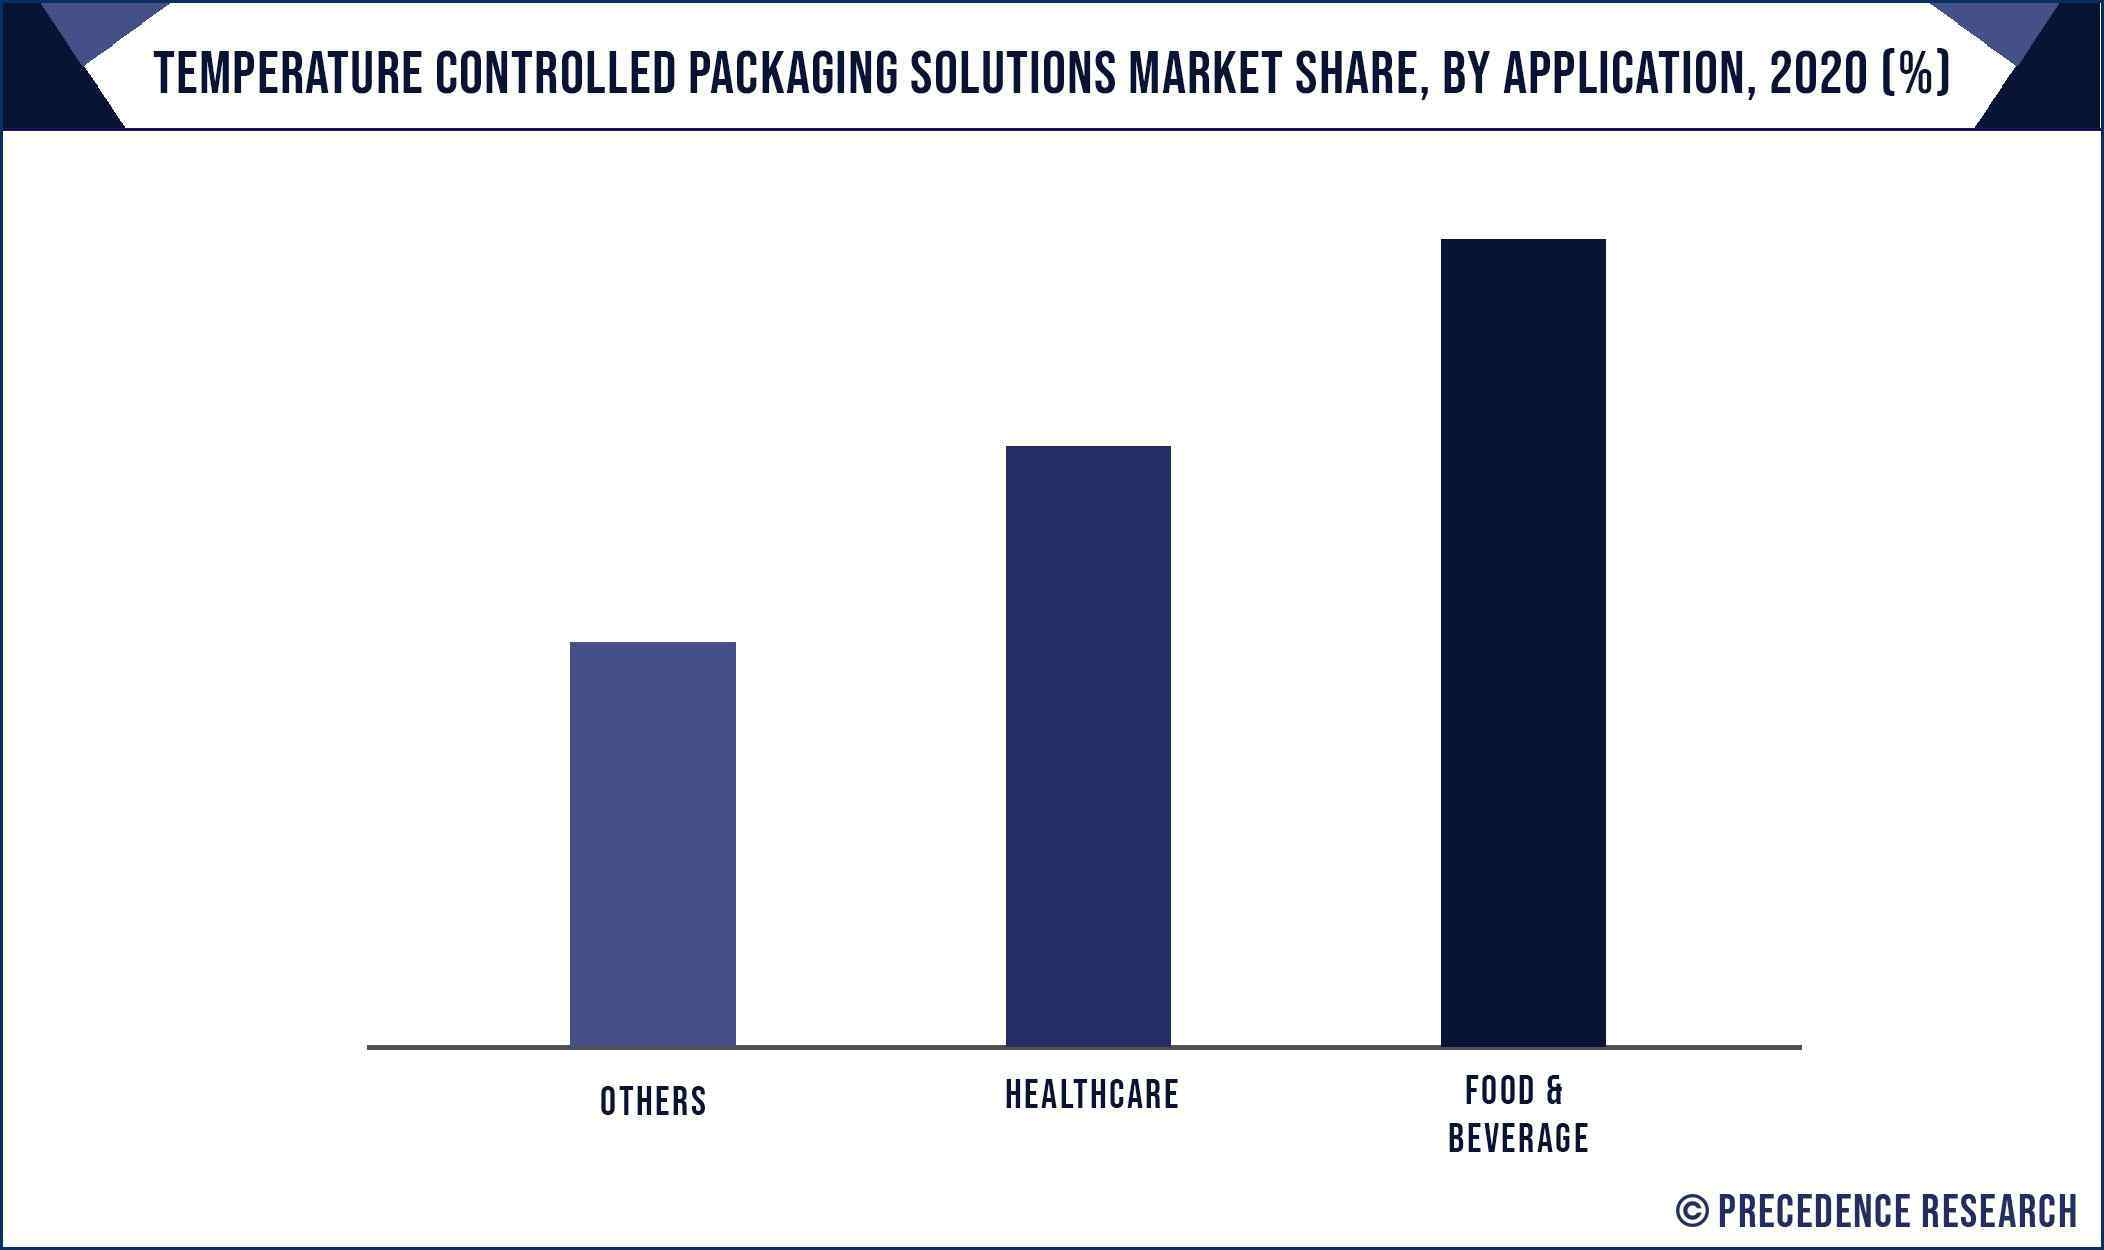 Temperature Controlled Packaging Solutions Market Share, By Application, 2020 (%)